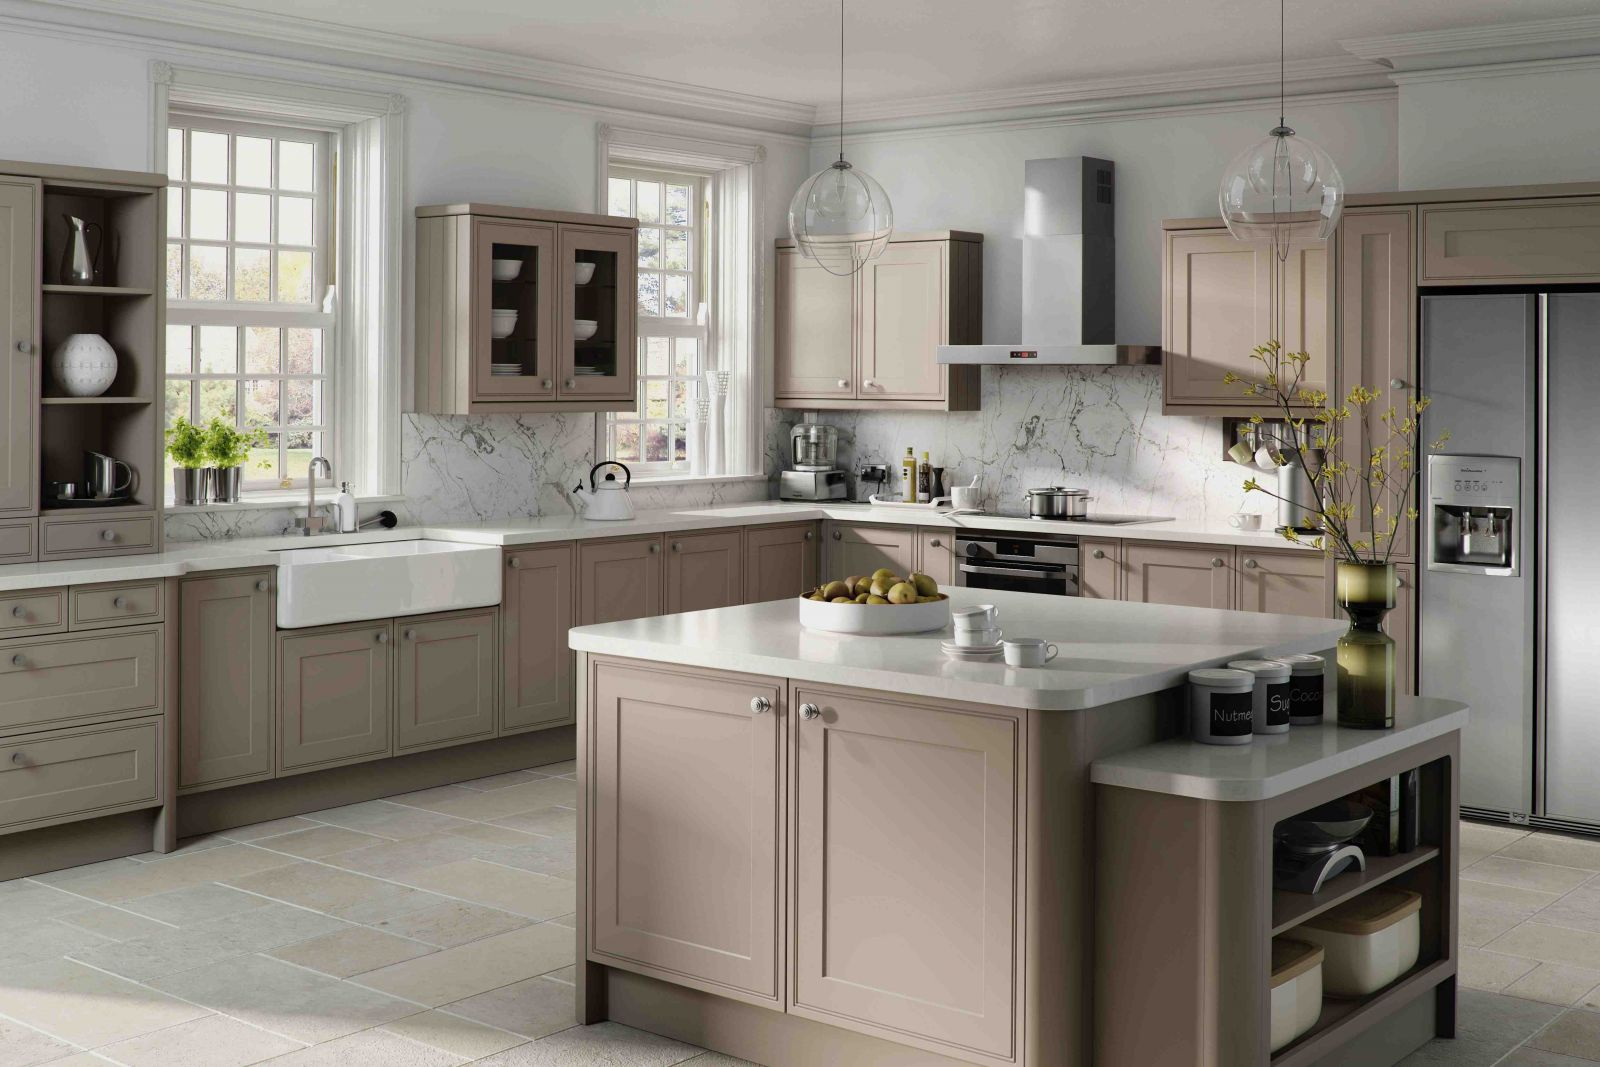 6 Alternatives To White Kitchen Cabinets Divine Design Build